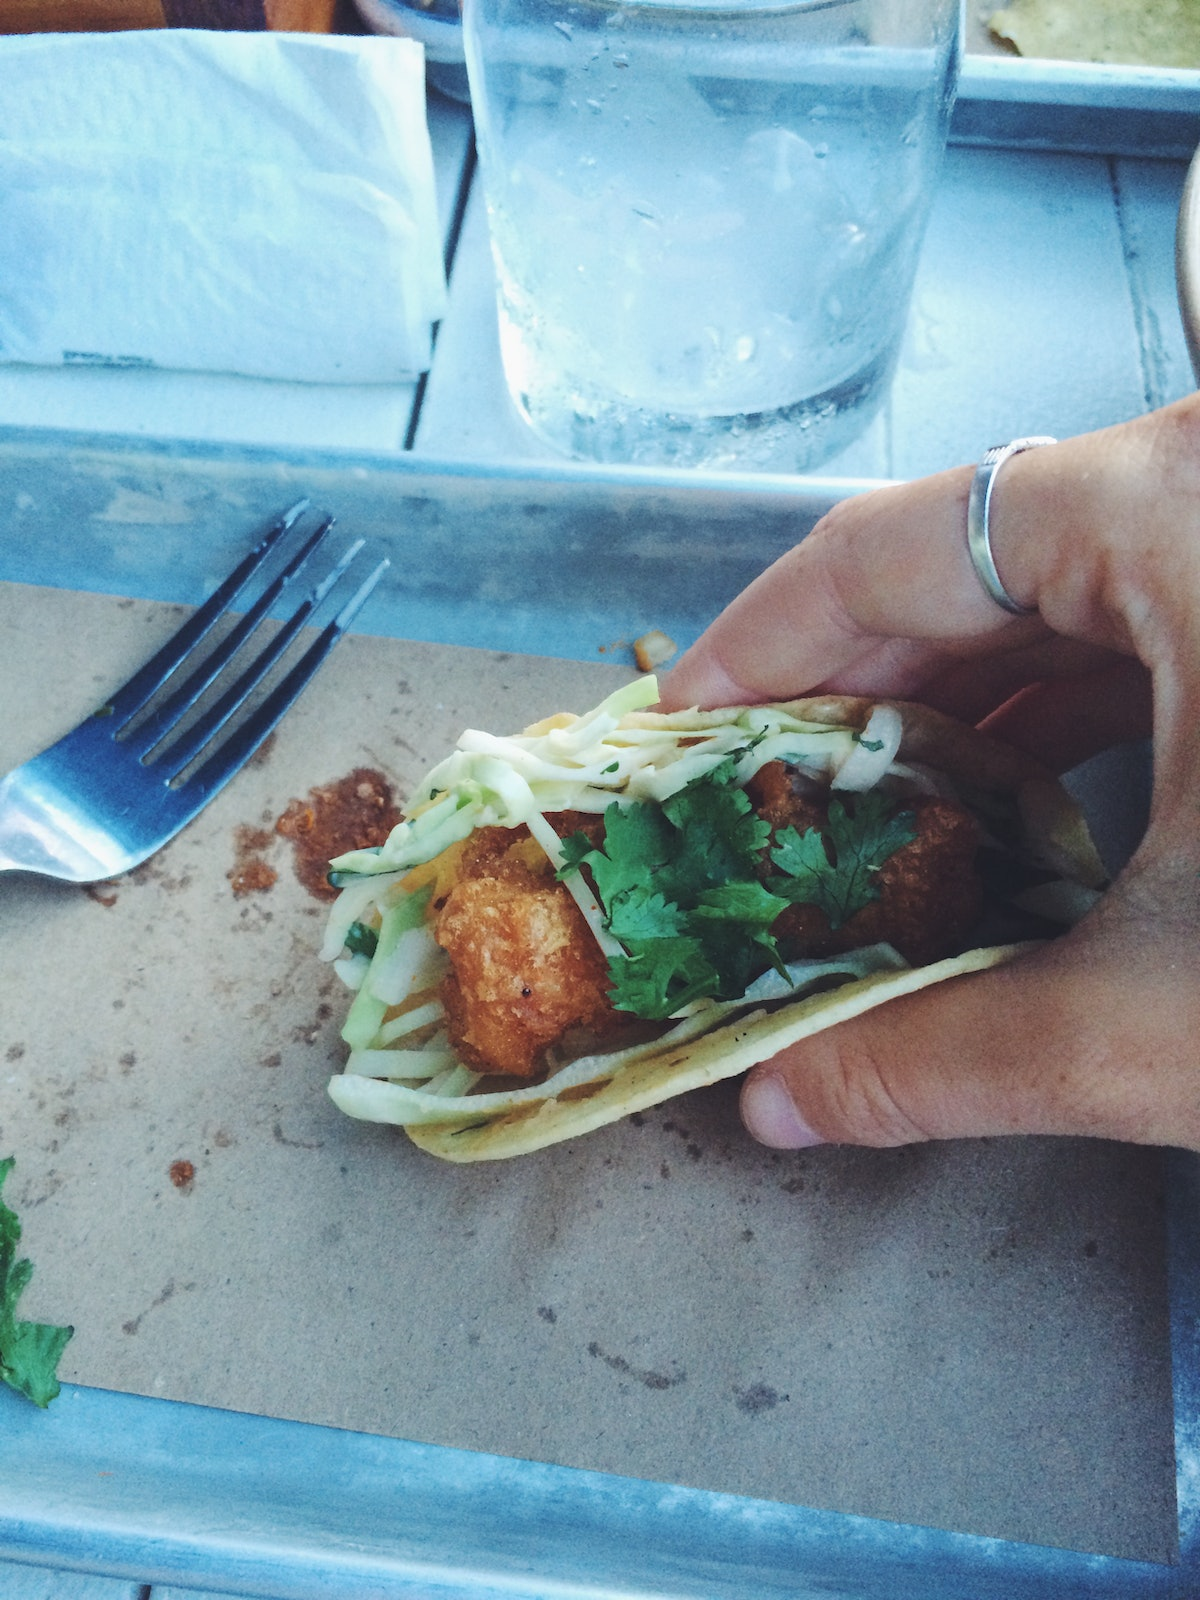 A woman holds a fish taco in her hand over a small, metal tray.